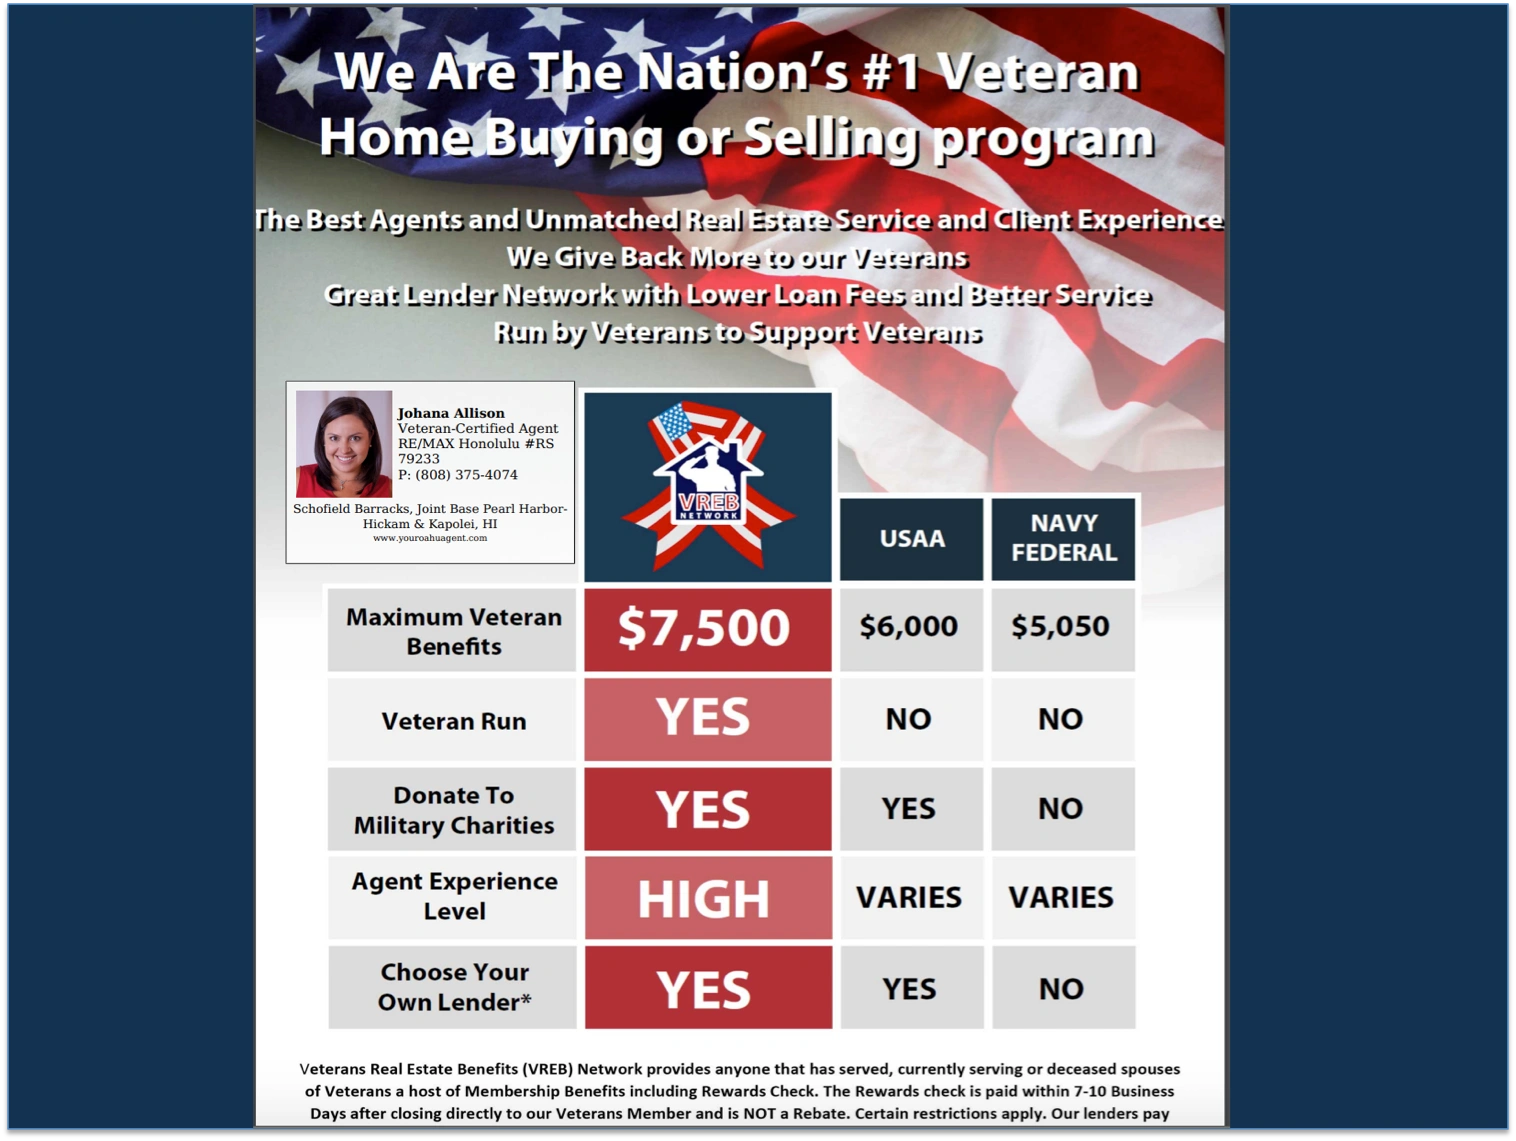 VREB is the Nations's #1 Veteran Home Buyer or Selling Program.